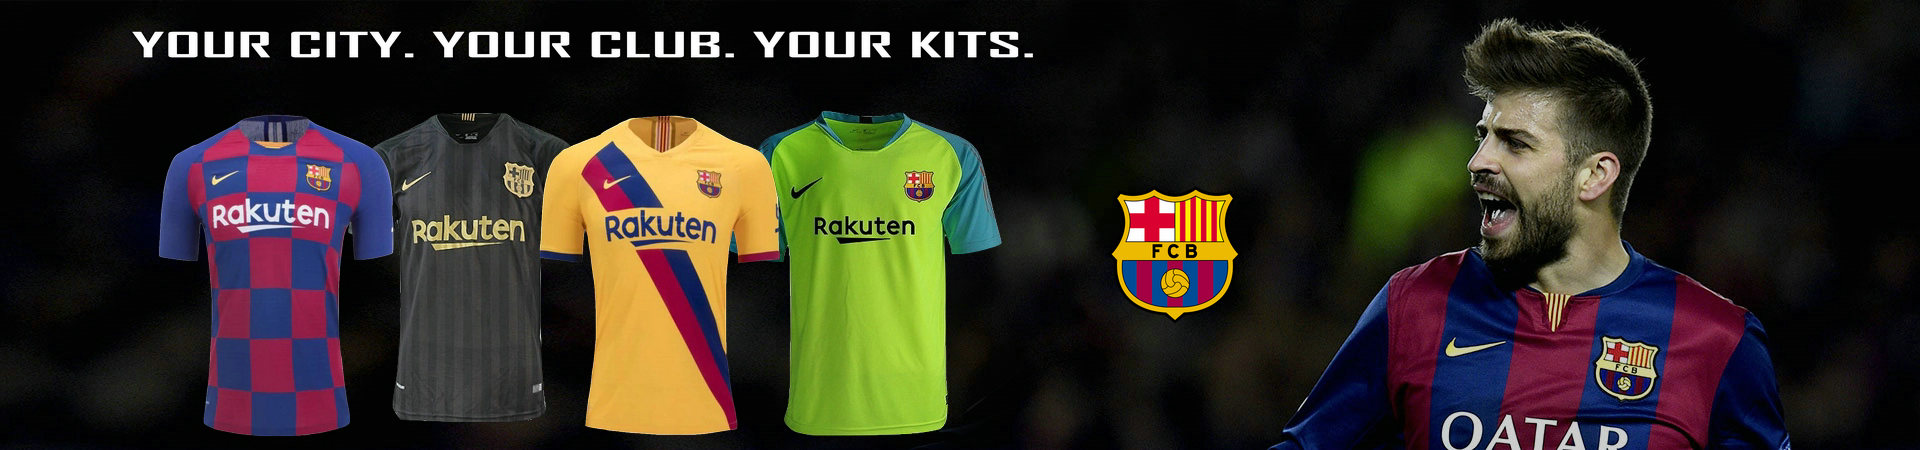 Barcelona FC Player Jerseys On Sale Shop